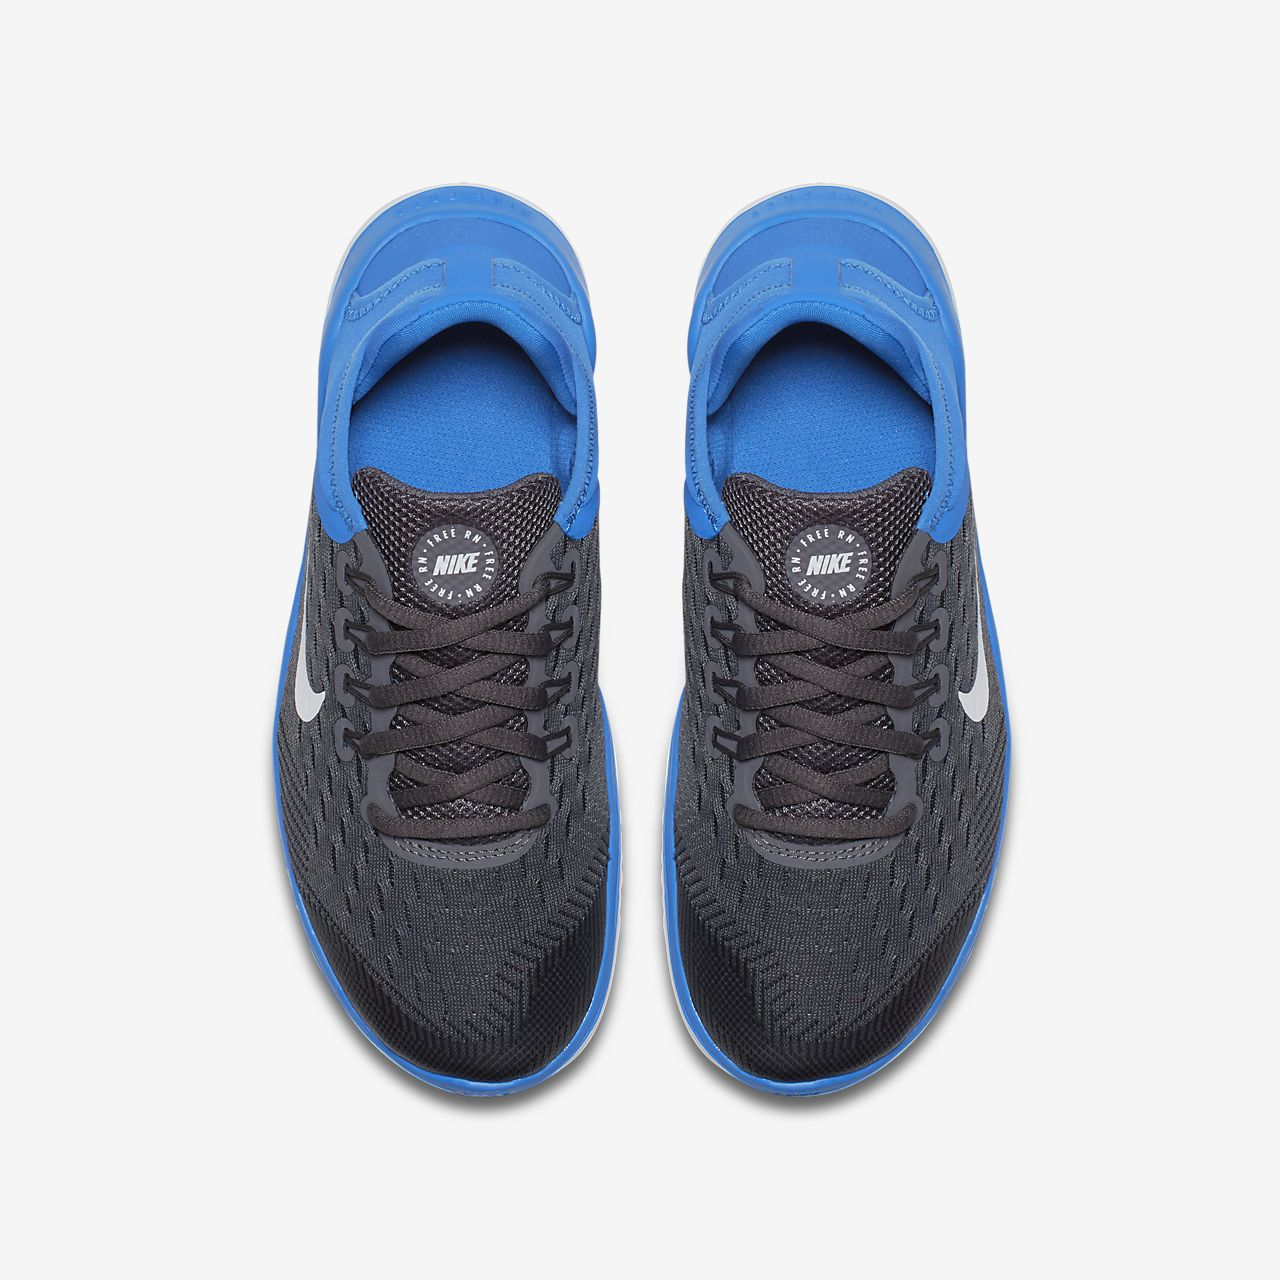 1021edee45ff5 Nike Free RN 2018 Older Kids  Running Shoe. Nike.com NZ